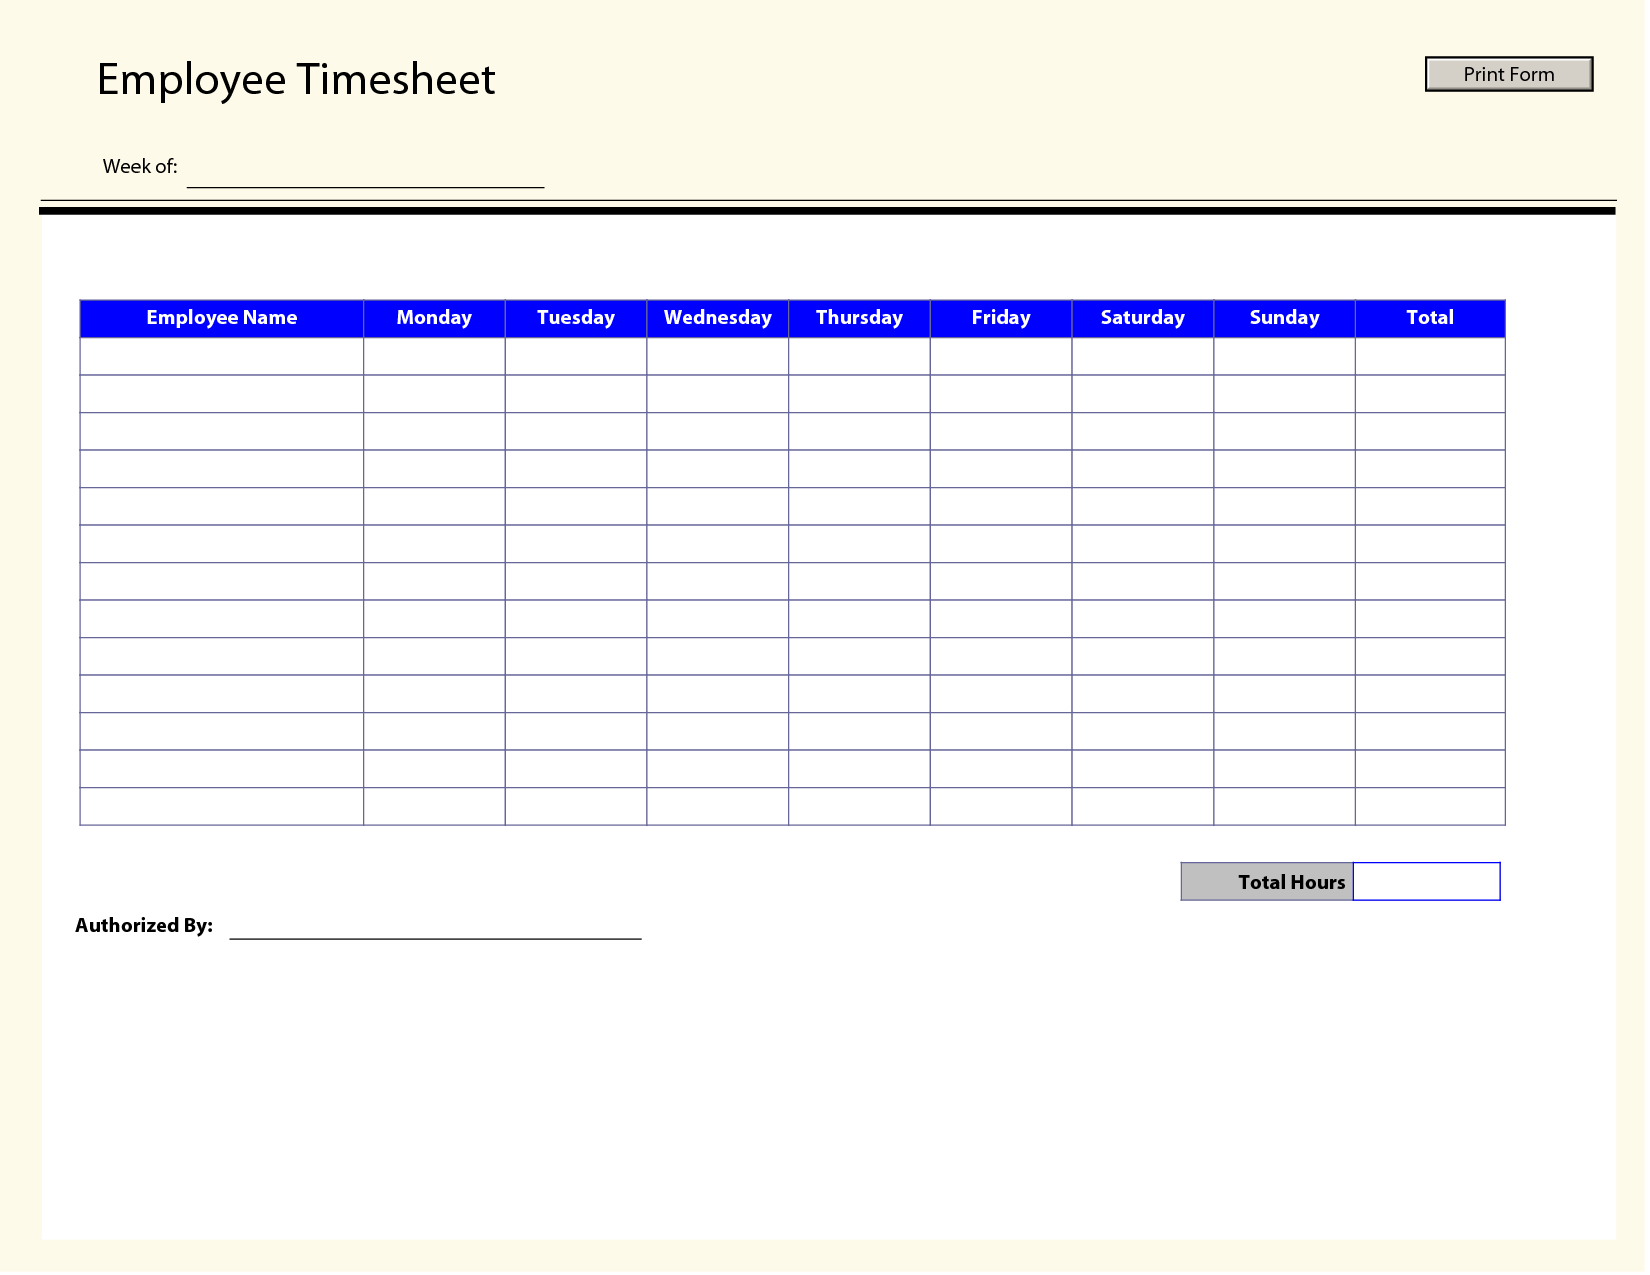 Printable Time Sheets | Free Printable Employee Timesheets Employee  Timesheet Print Form Week ... Templates ...  Microsoft Templates Timesheet